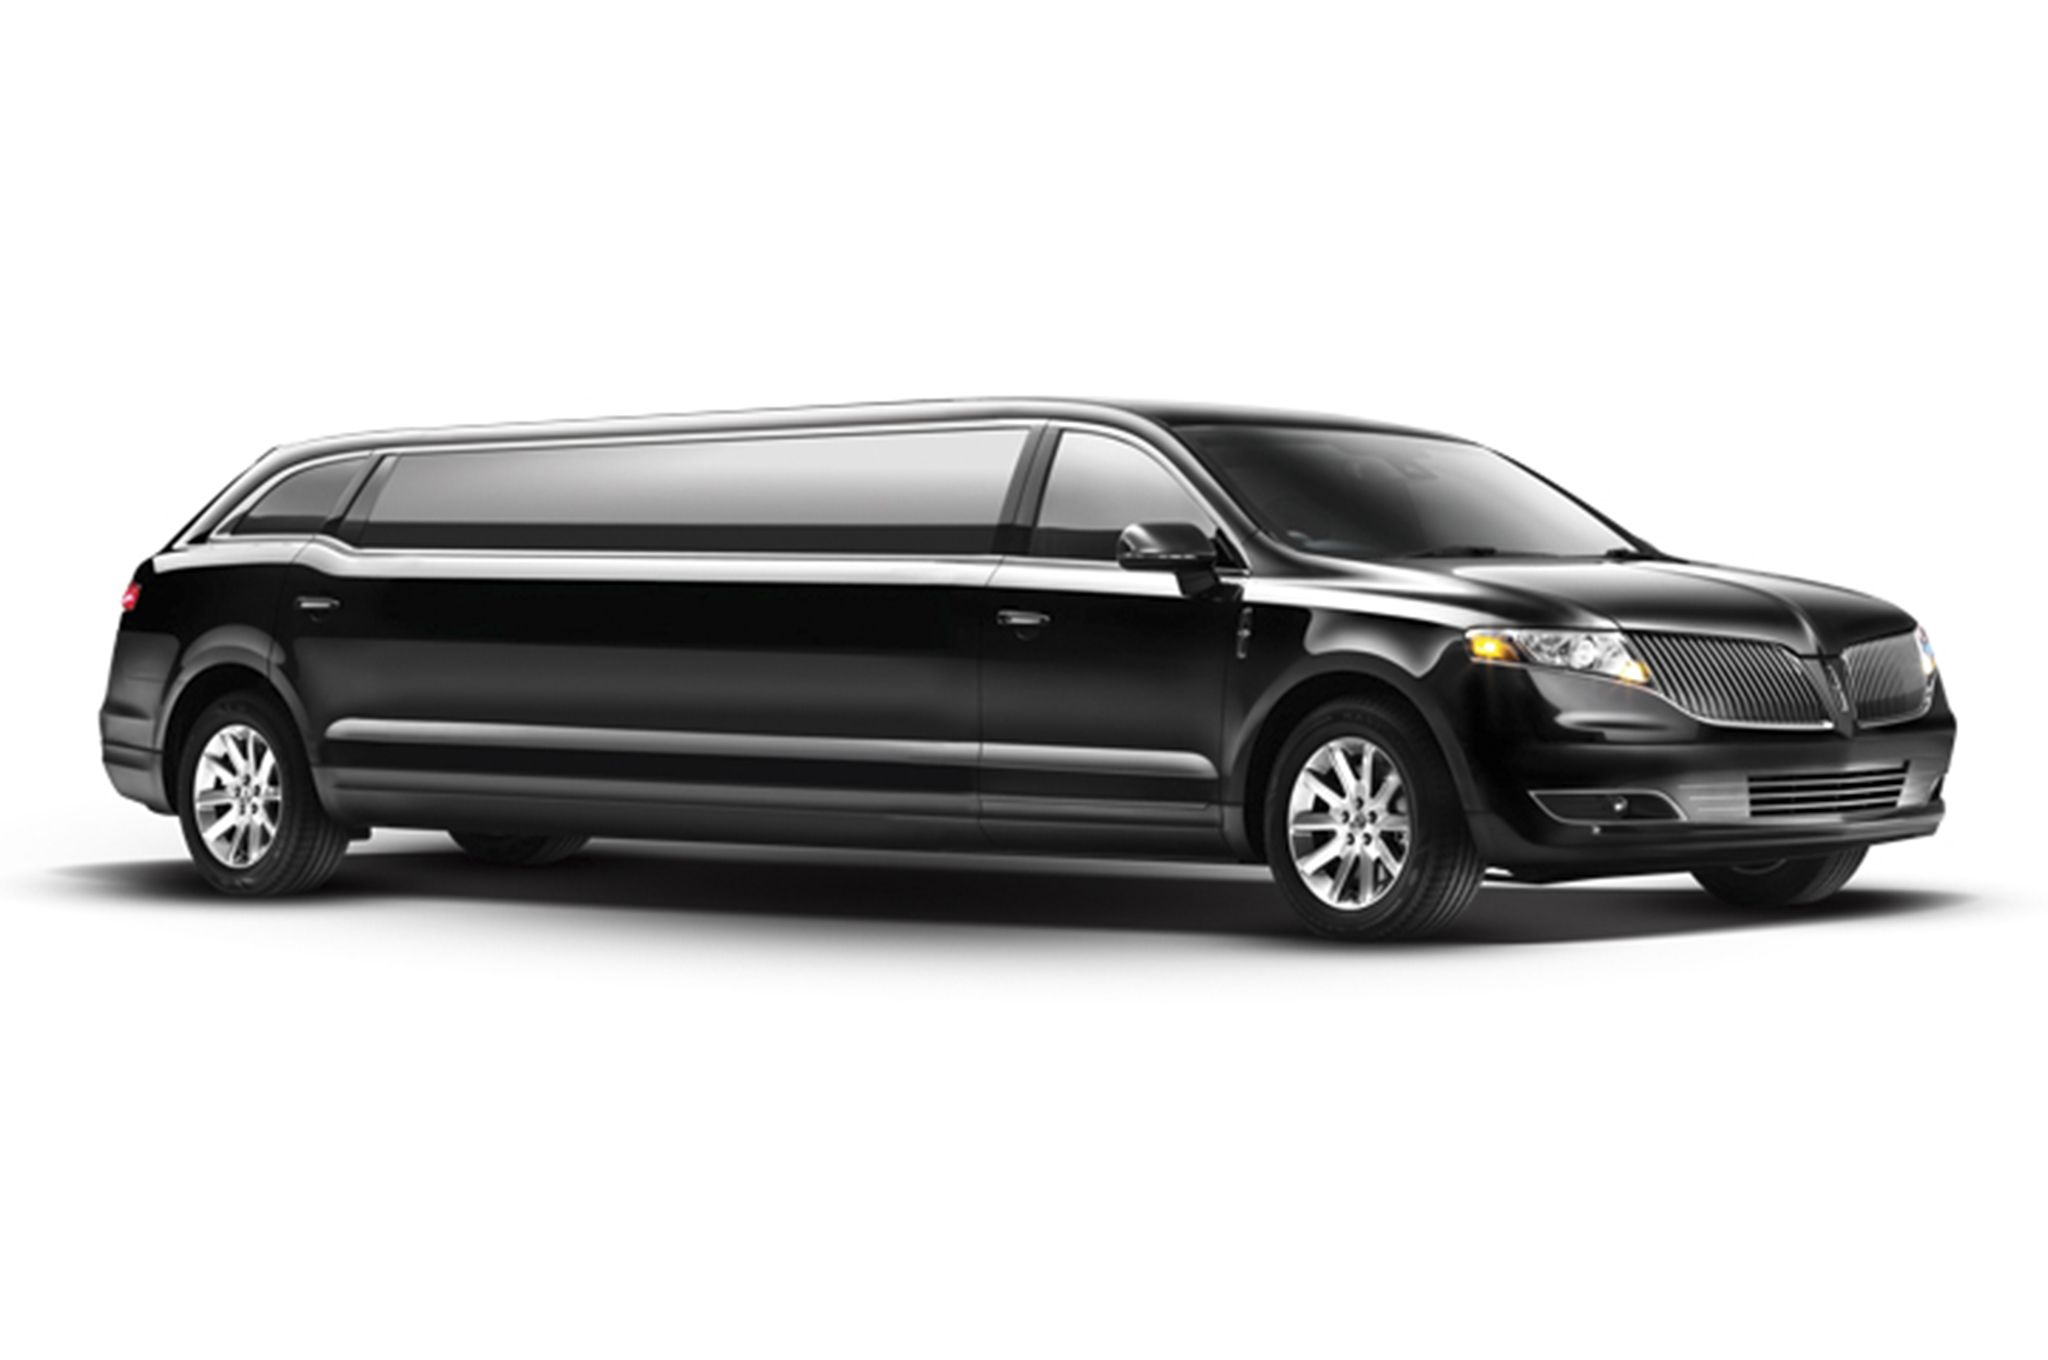 Premier Wedding Transportation in Dallas DFW Limo and